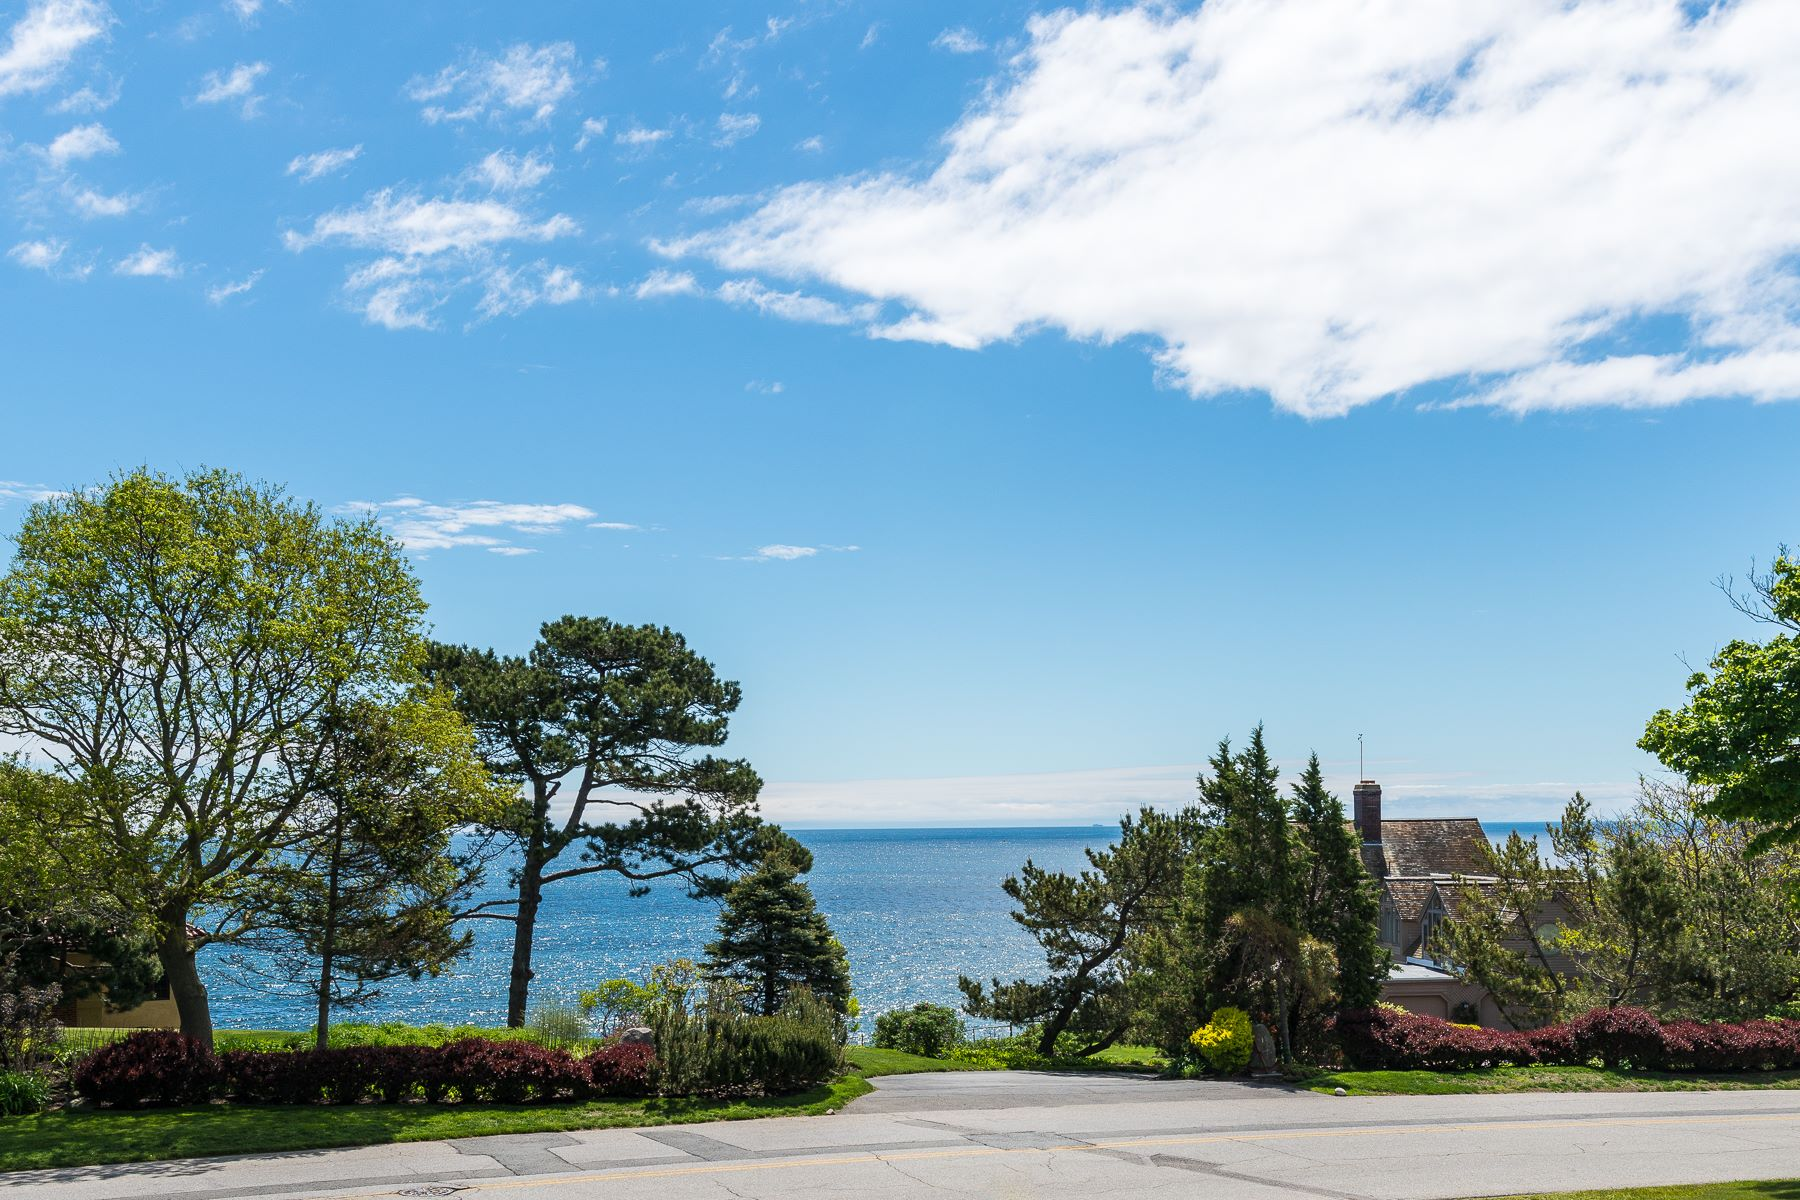 Moradia para Venda às Classic and Stately 5BR/4BA Colonial with Dazzling Ocean Views 312 Ocean Avenue Marblehead, Massachusetts, 01945 Estados Unidos